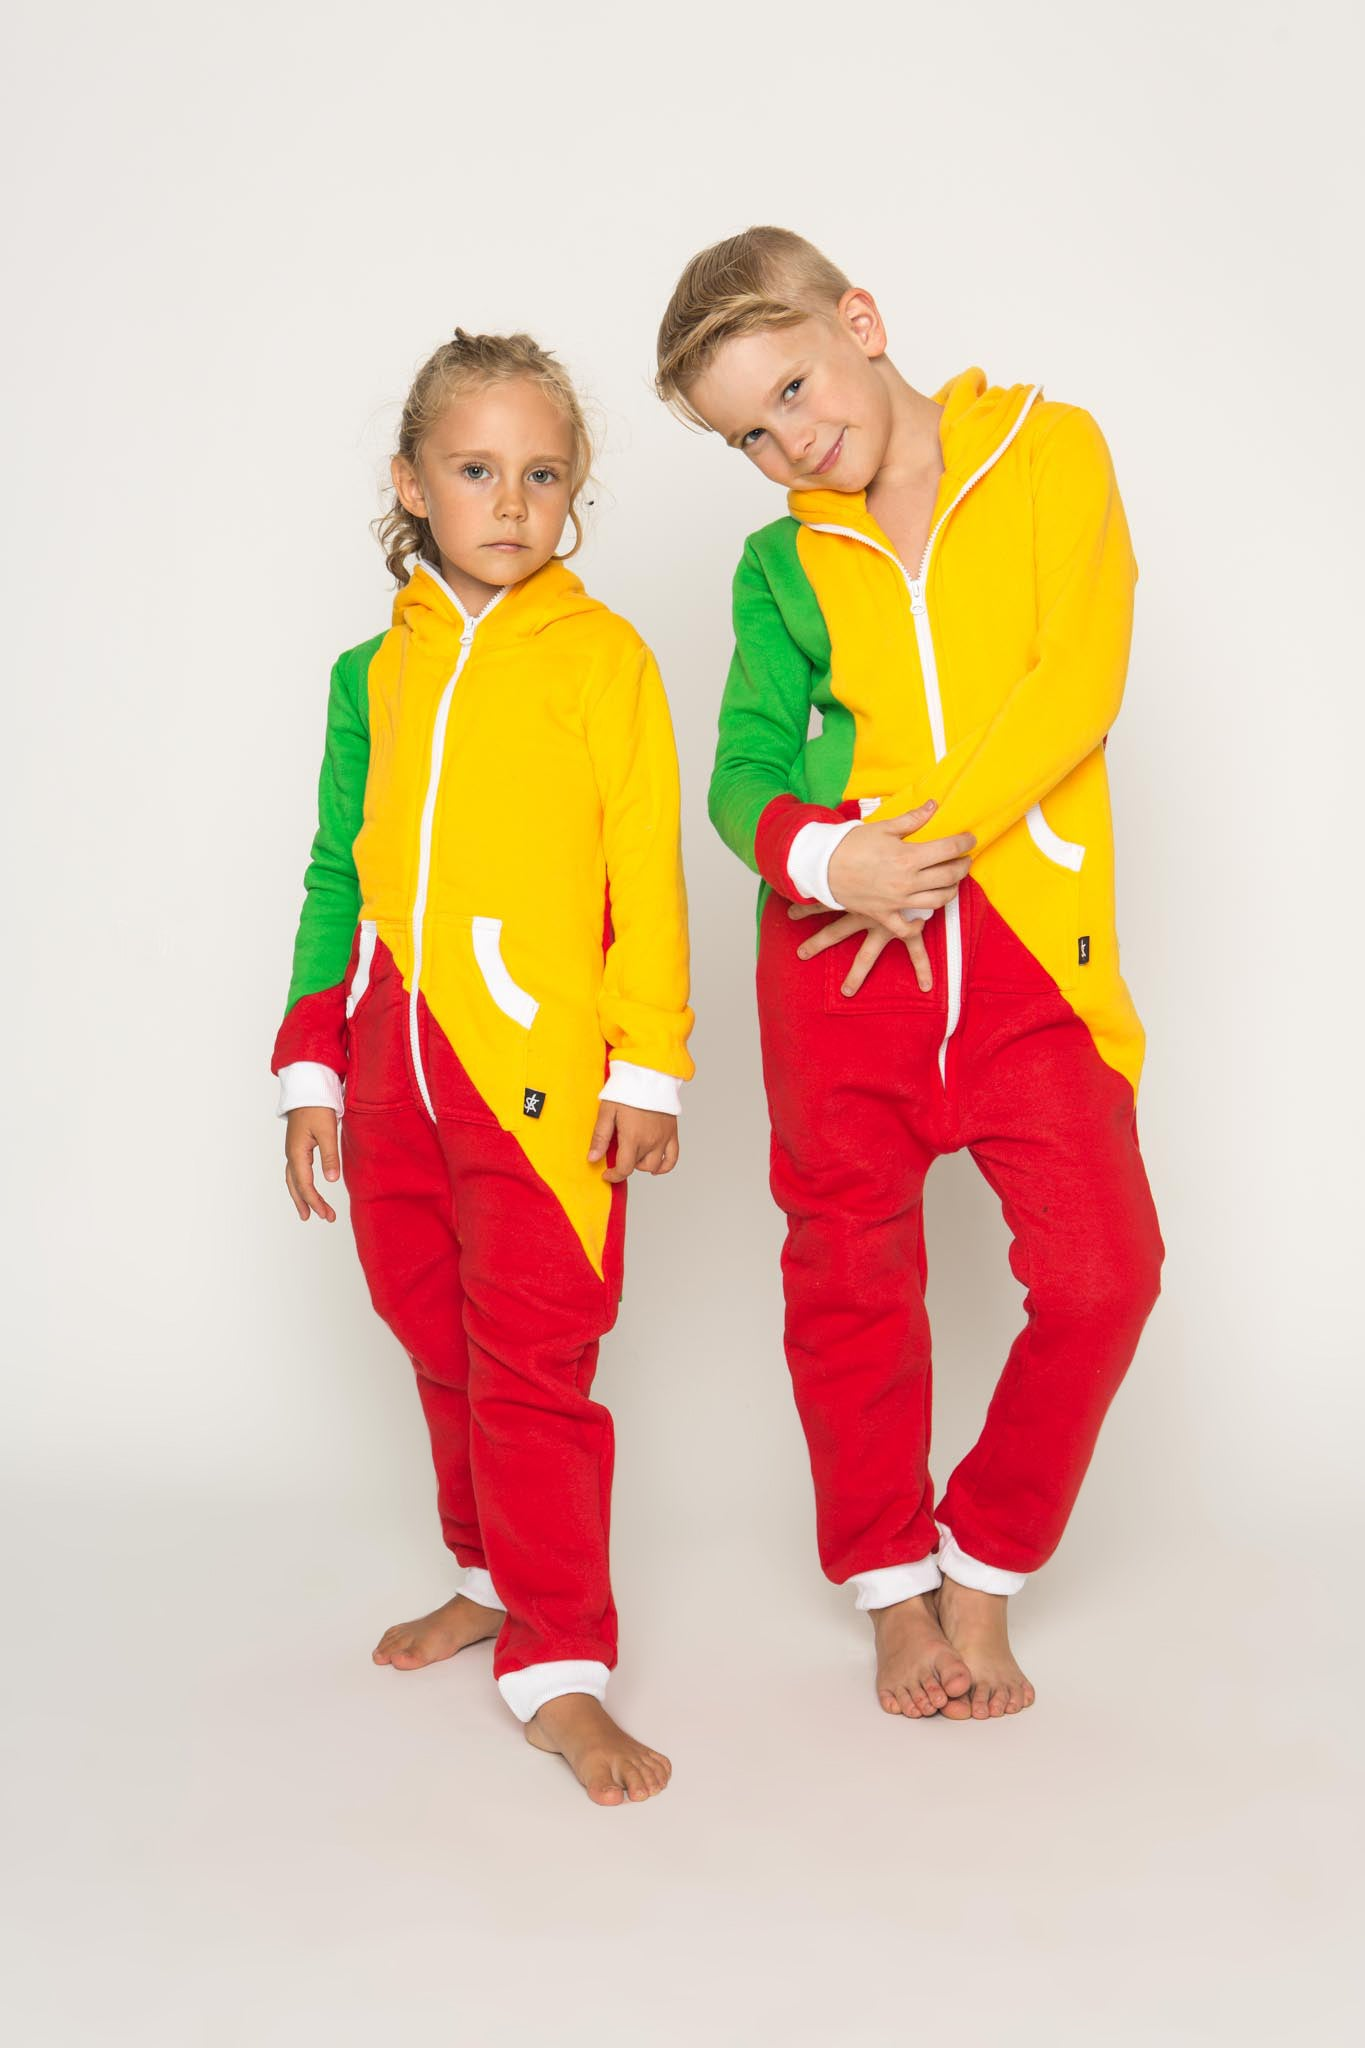 Sofa Killer tricolor unisex kids onesie LTU